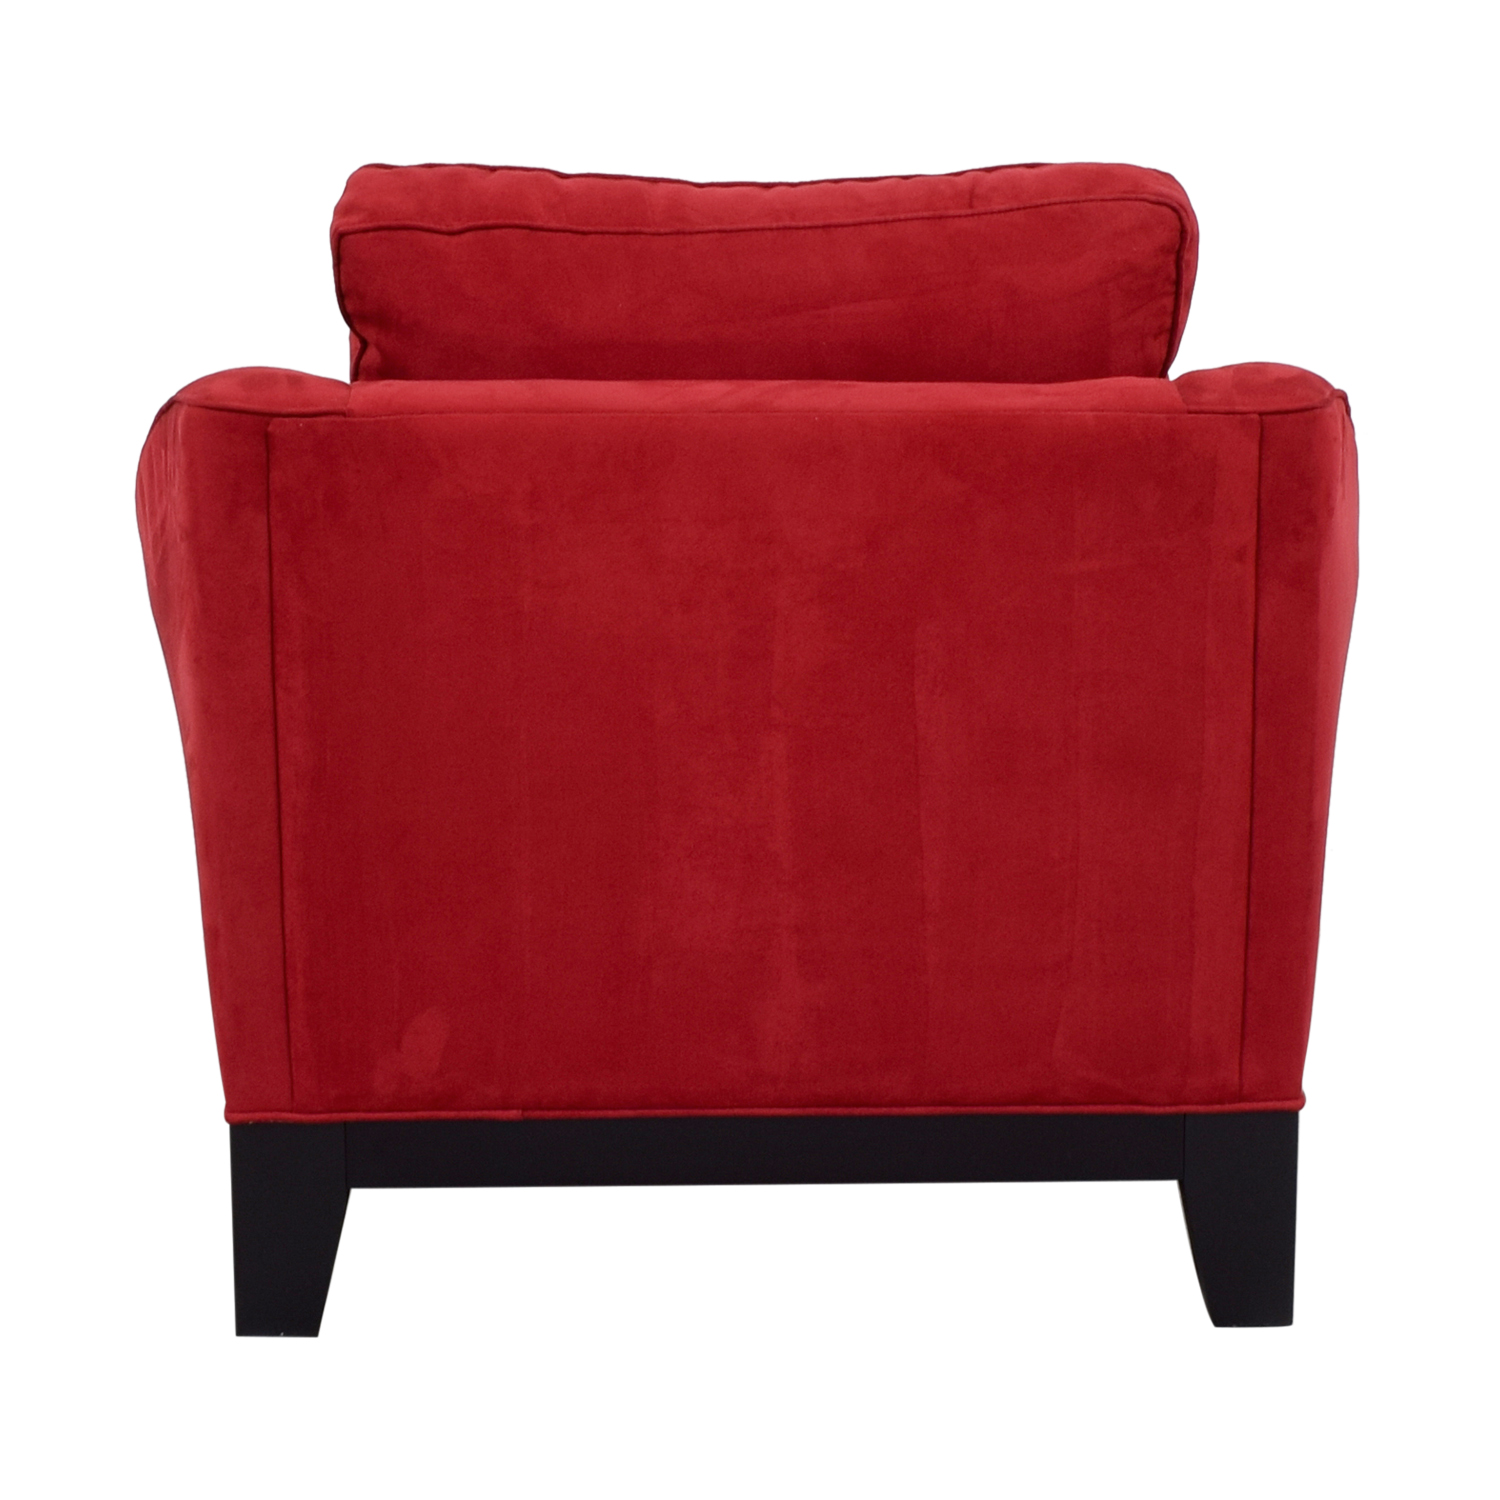 Raymour & Flanigan Raymour & Flanigan Red Microfiber Accent Chair for sale